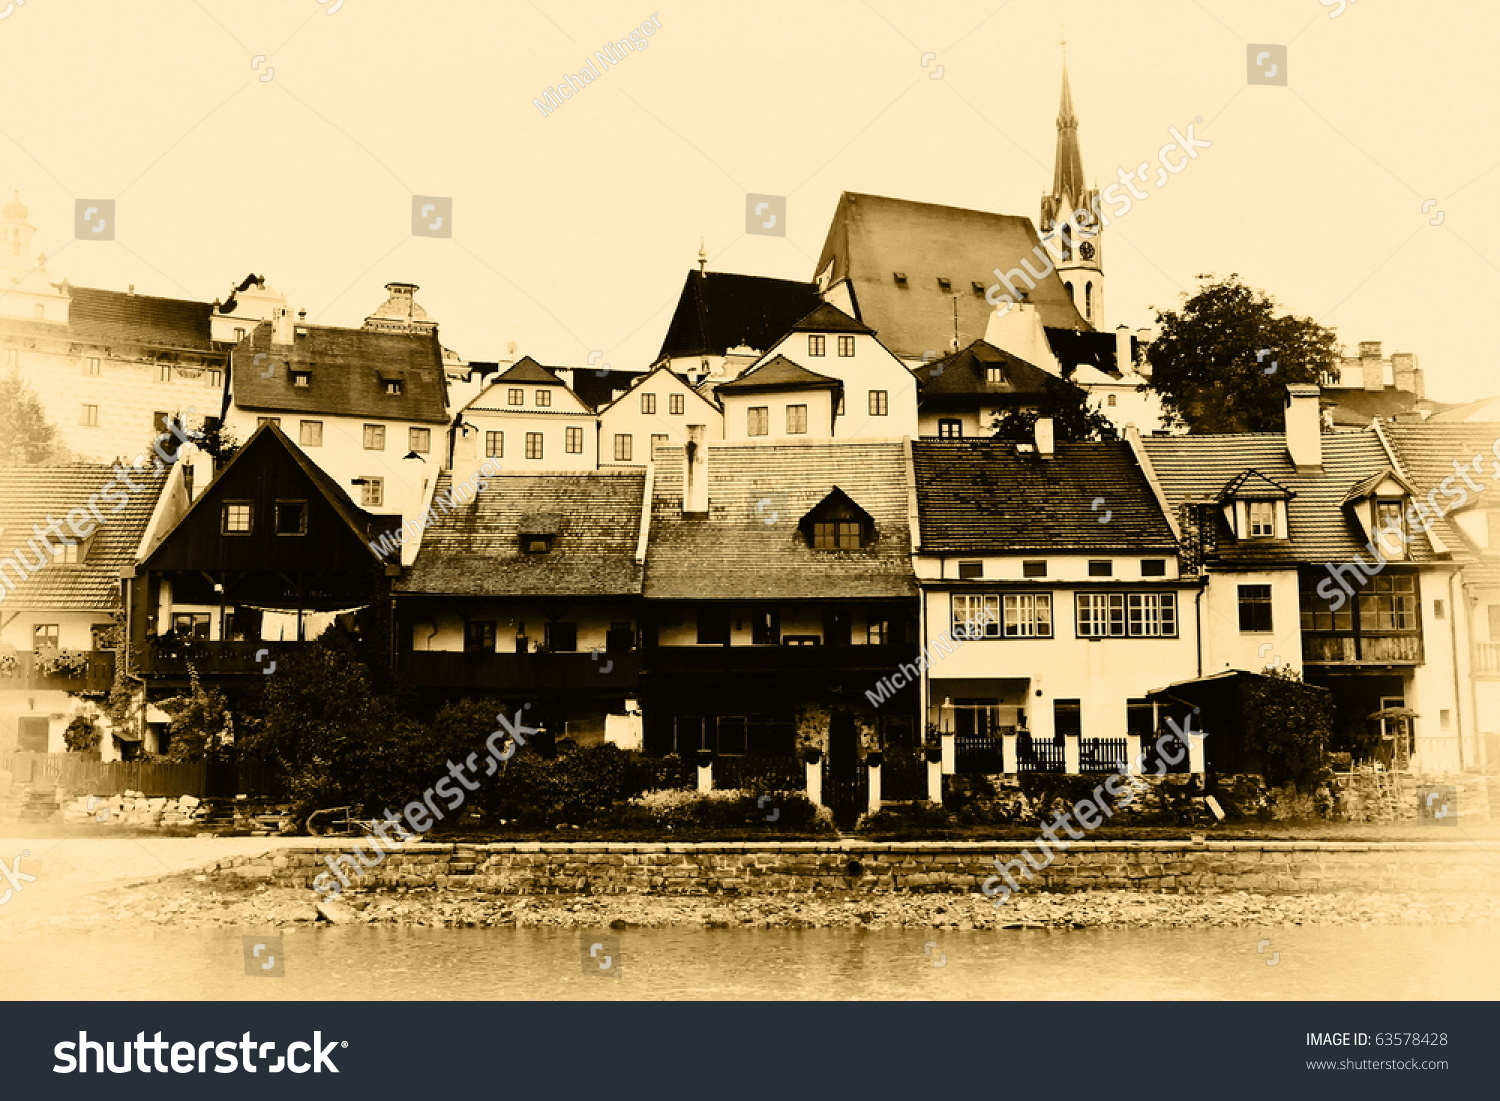 old European city, in imitation of historical photography sepia